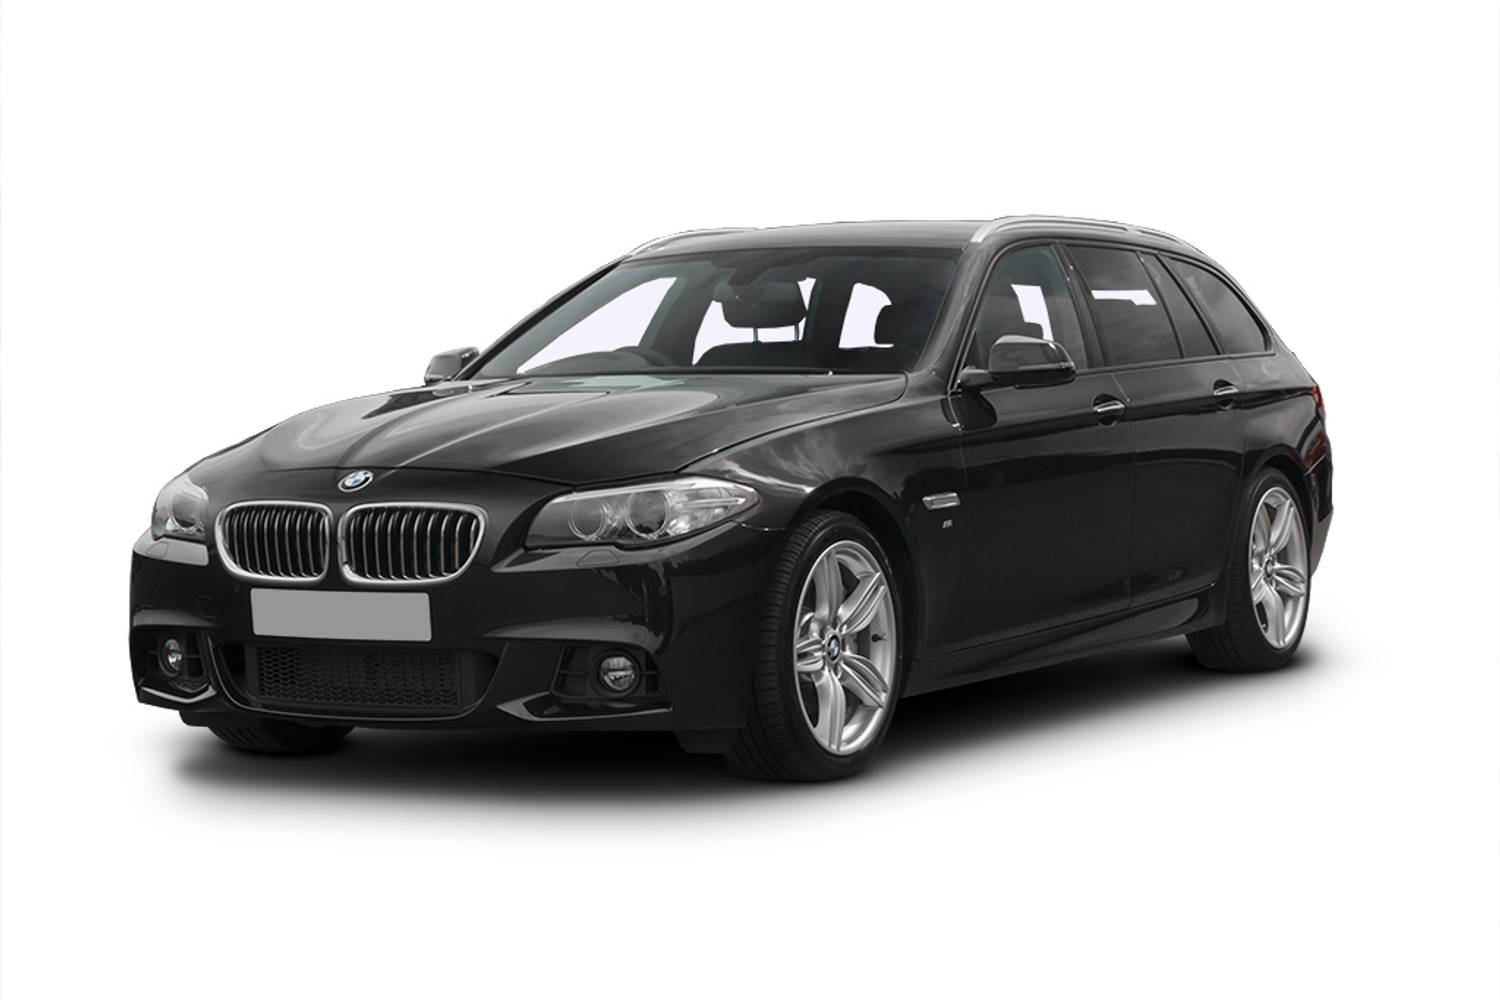 BMW 5 Series Touring 5dr